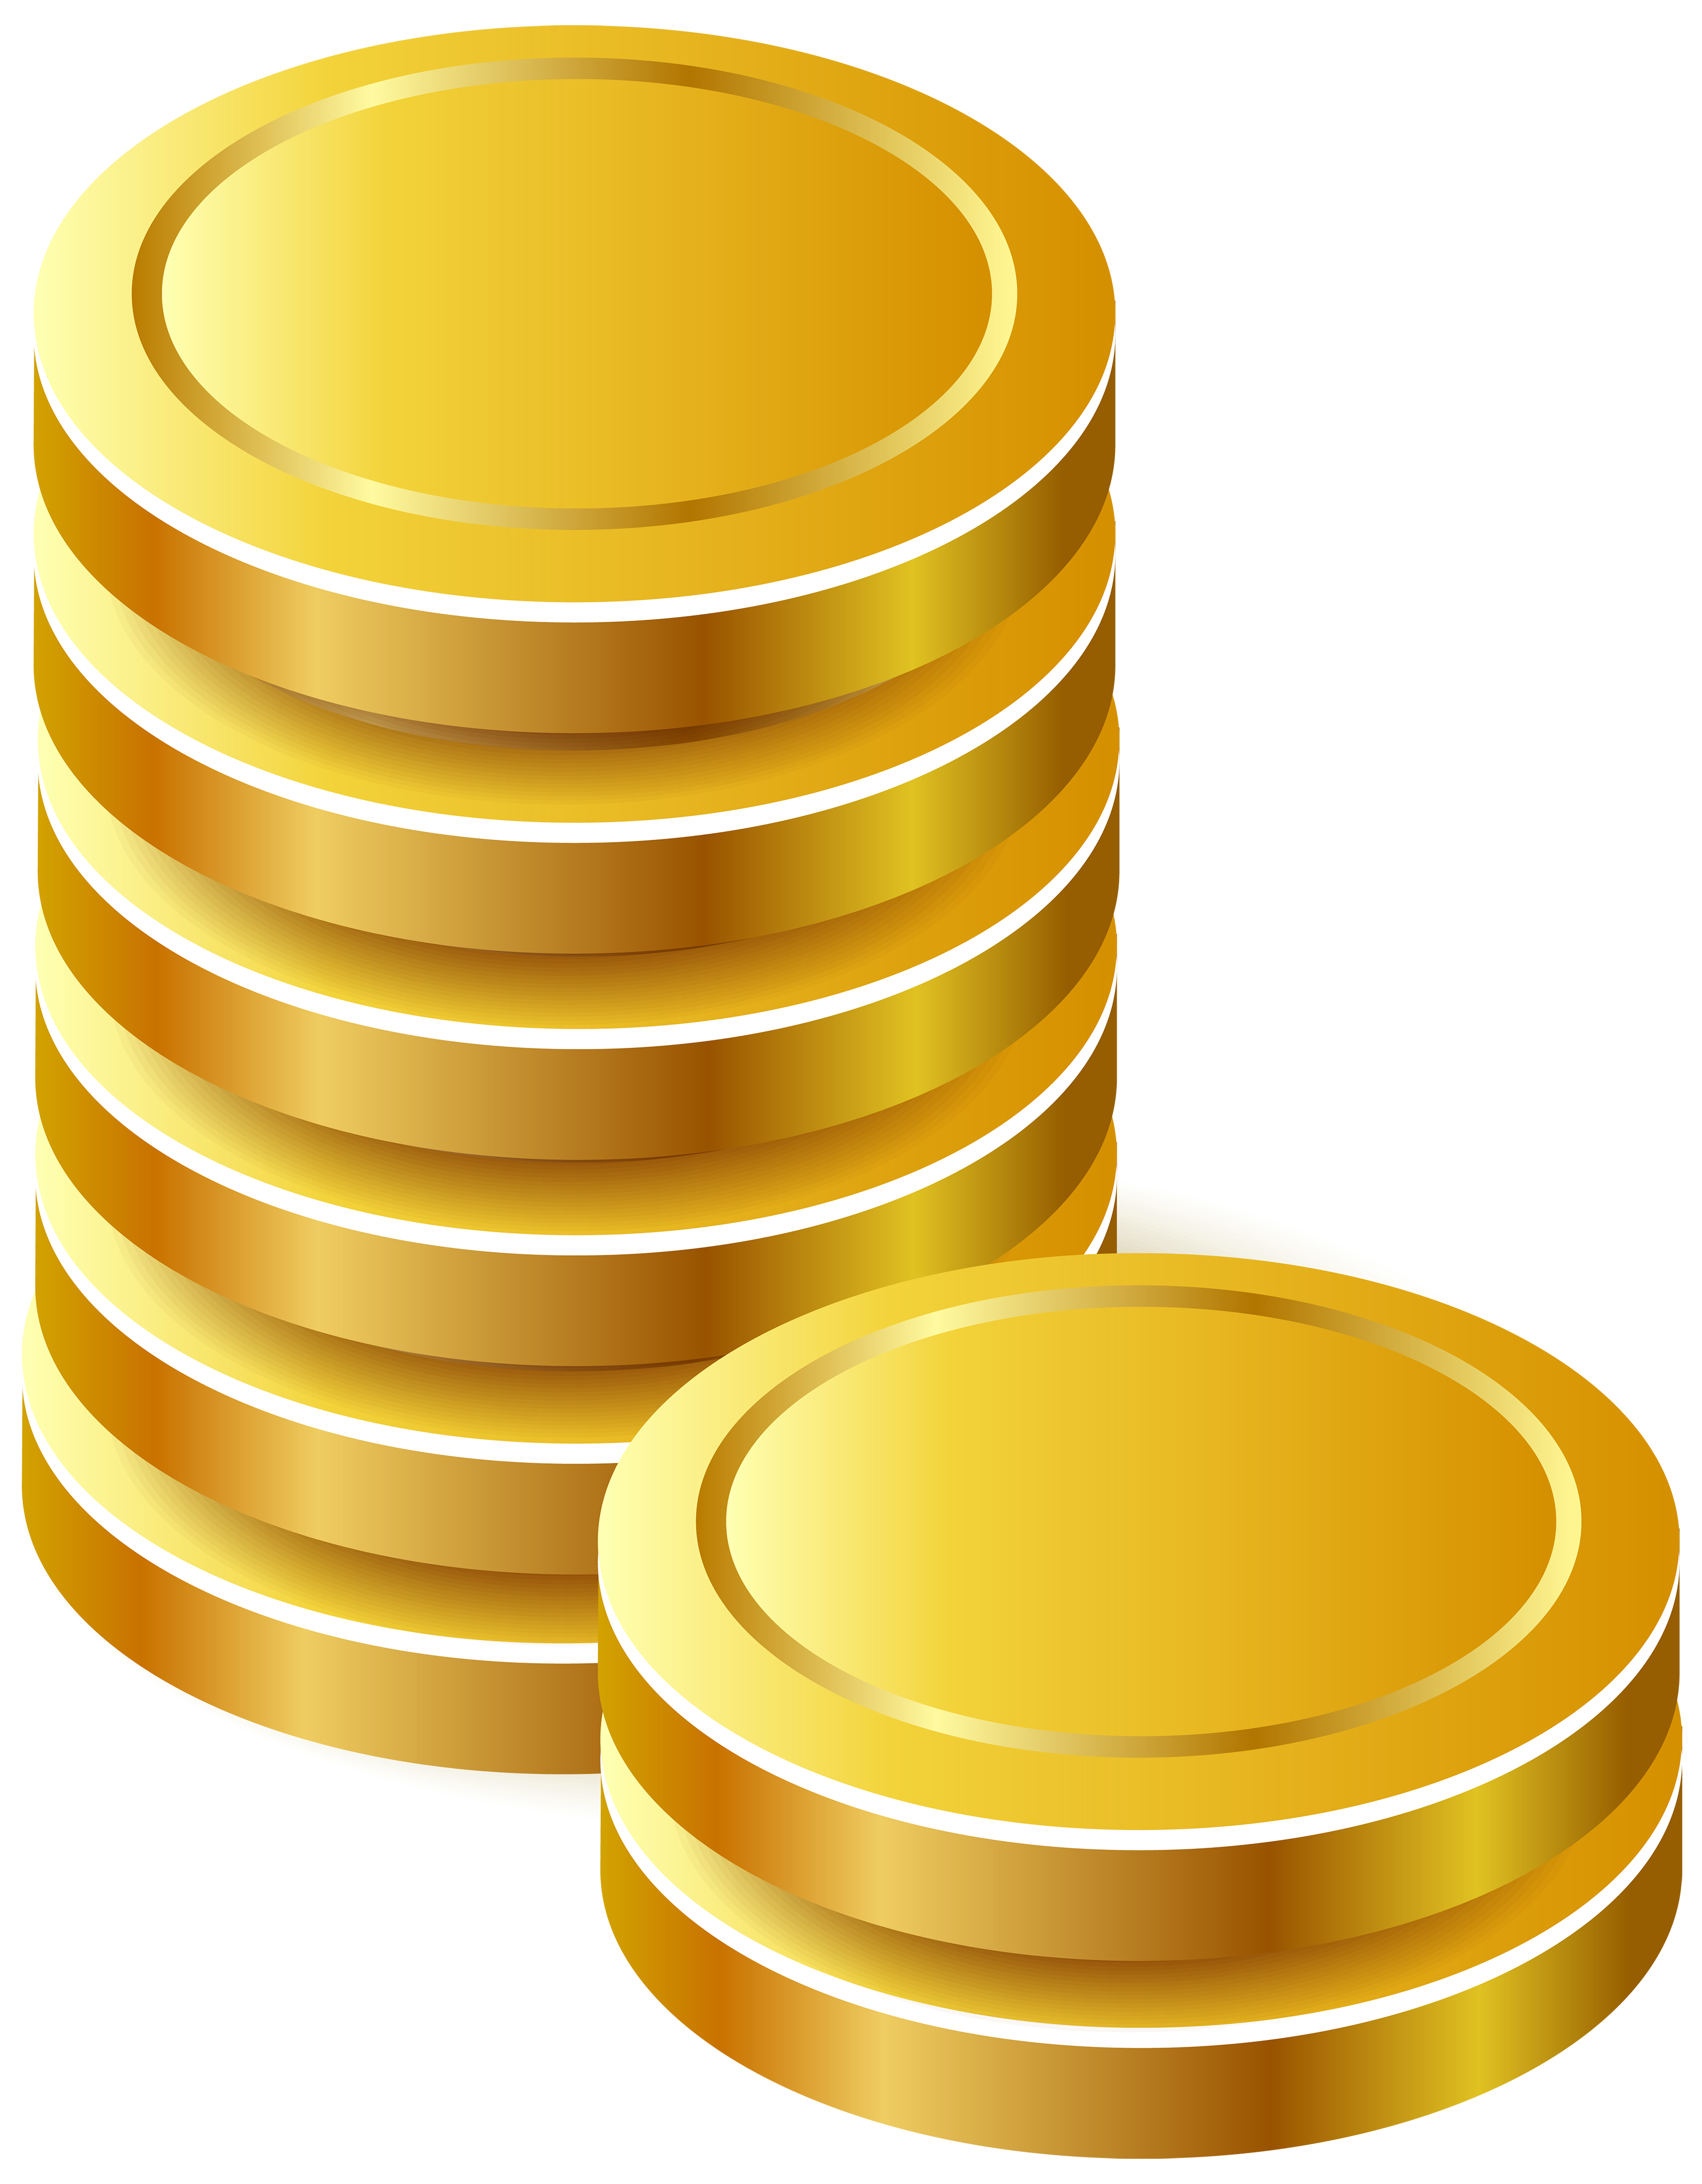 Coins clipart. Gold png best web